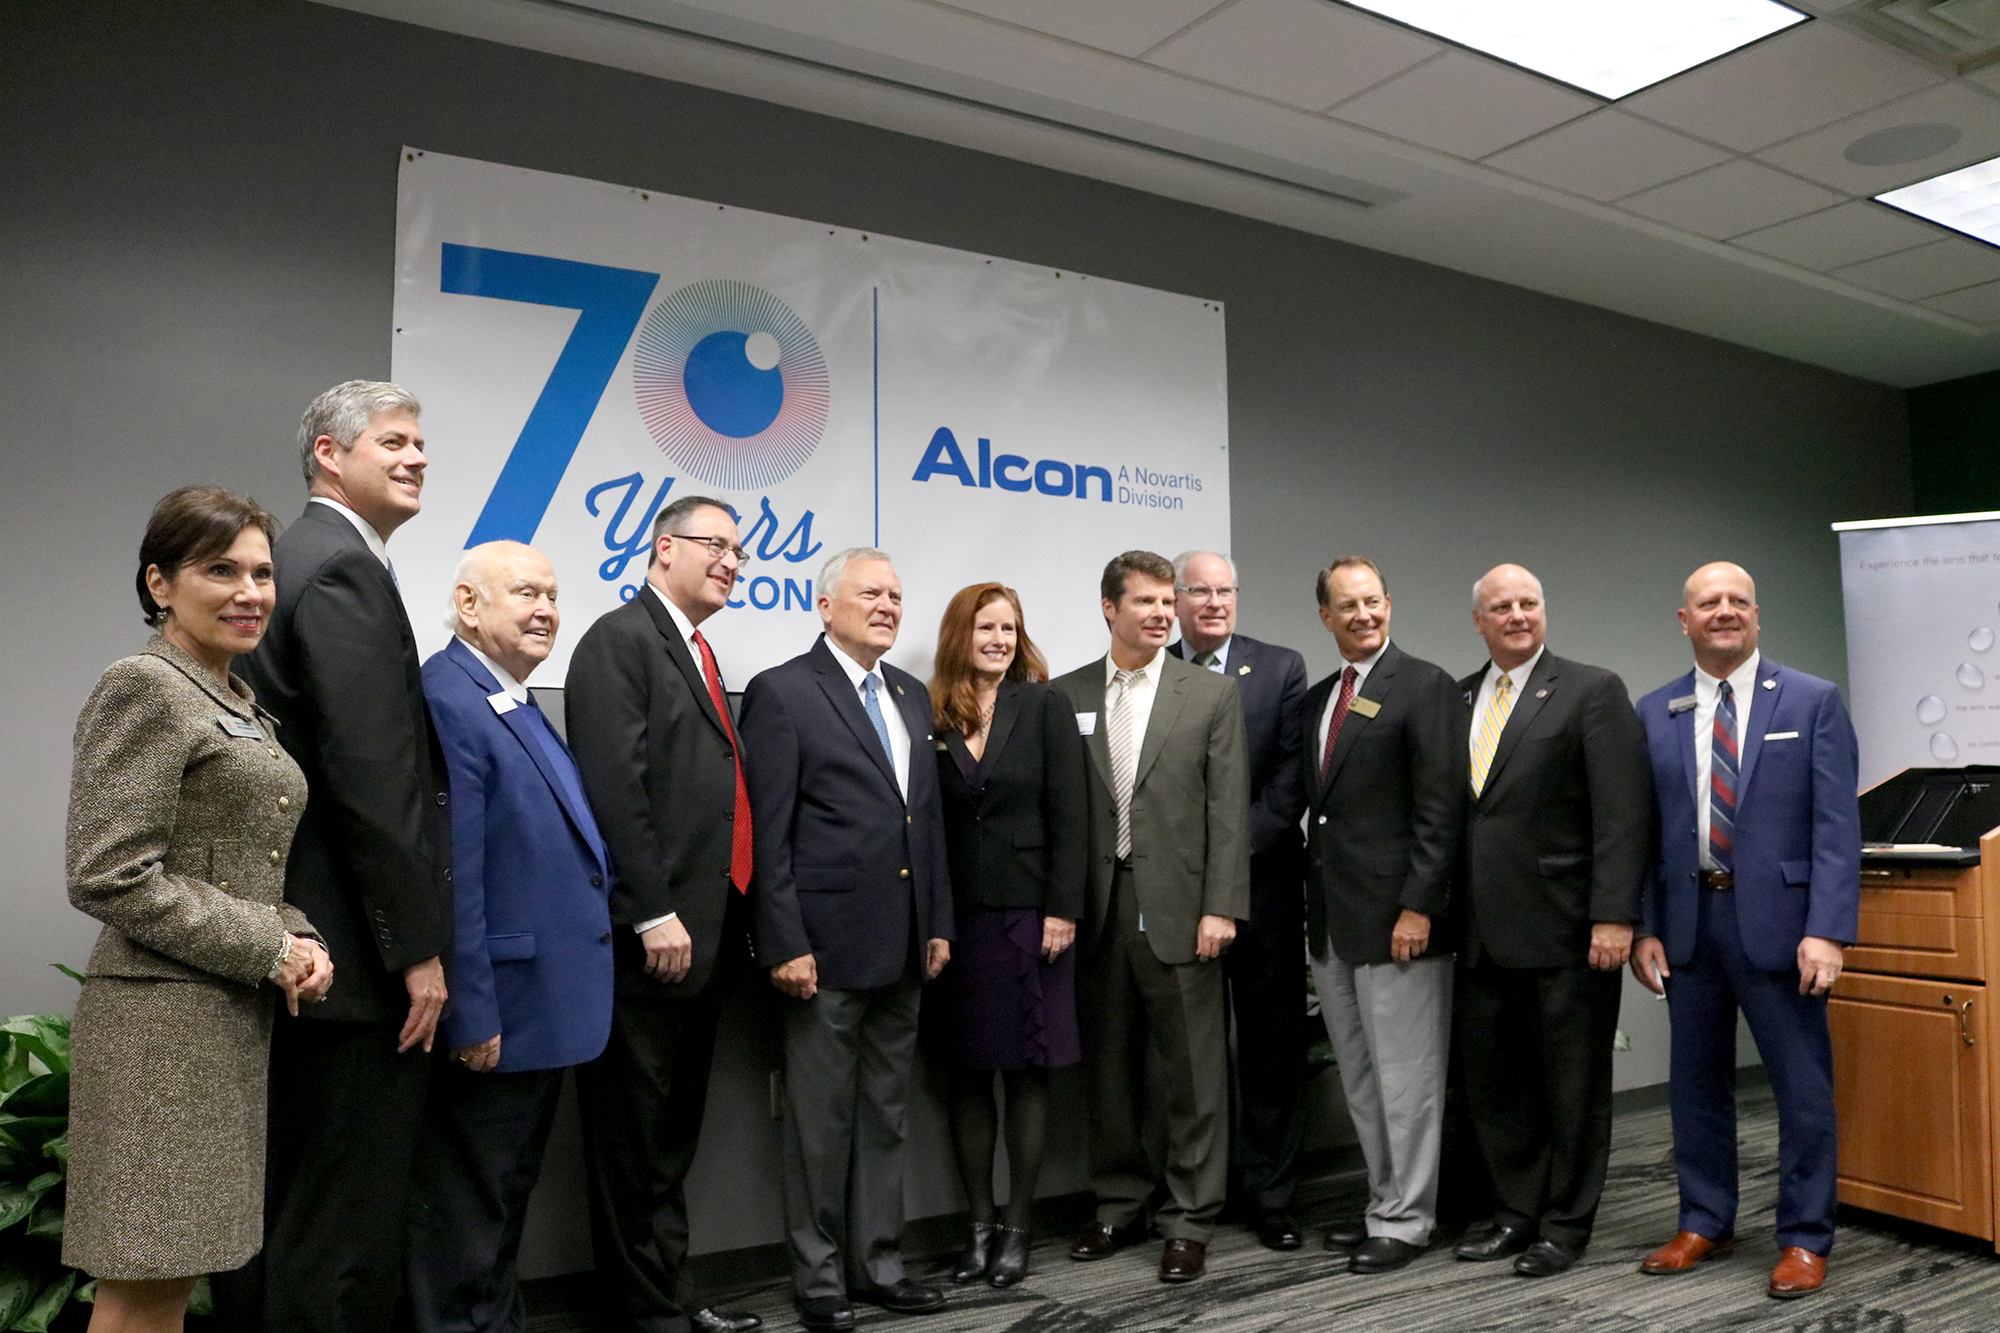 Alcon to invest $97 million in Johns Creek expansion